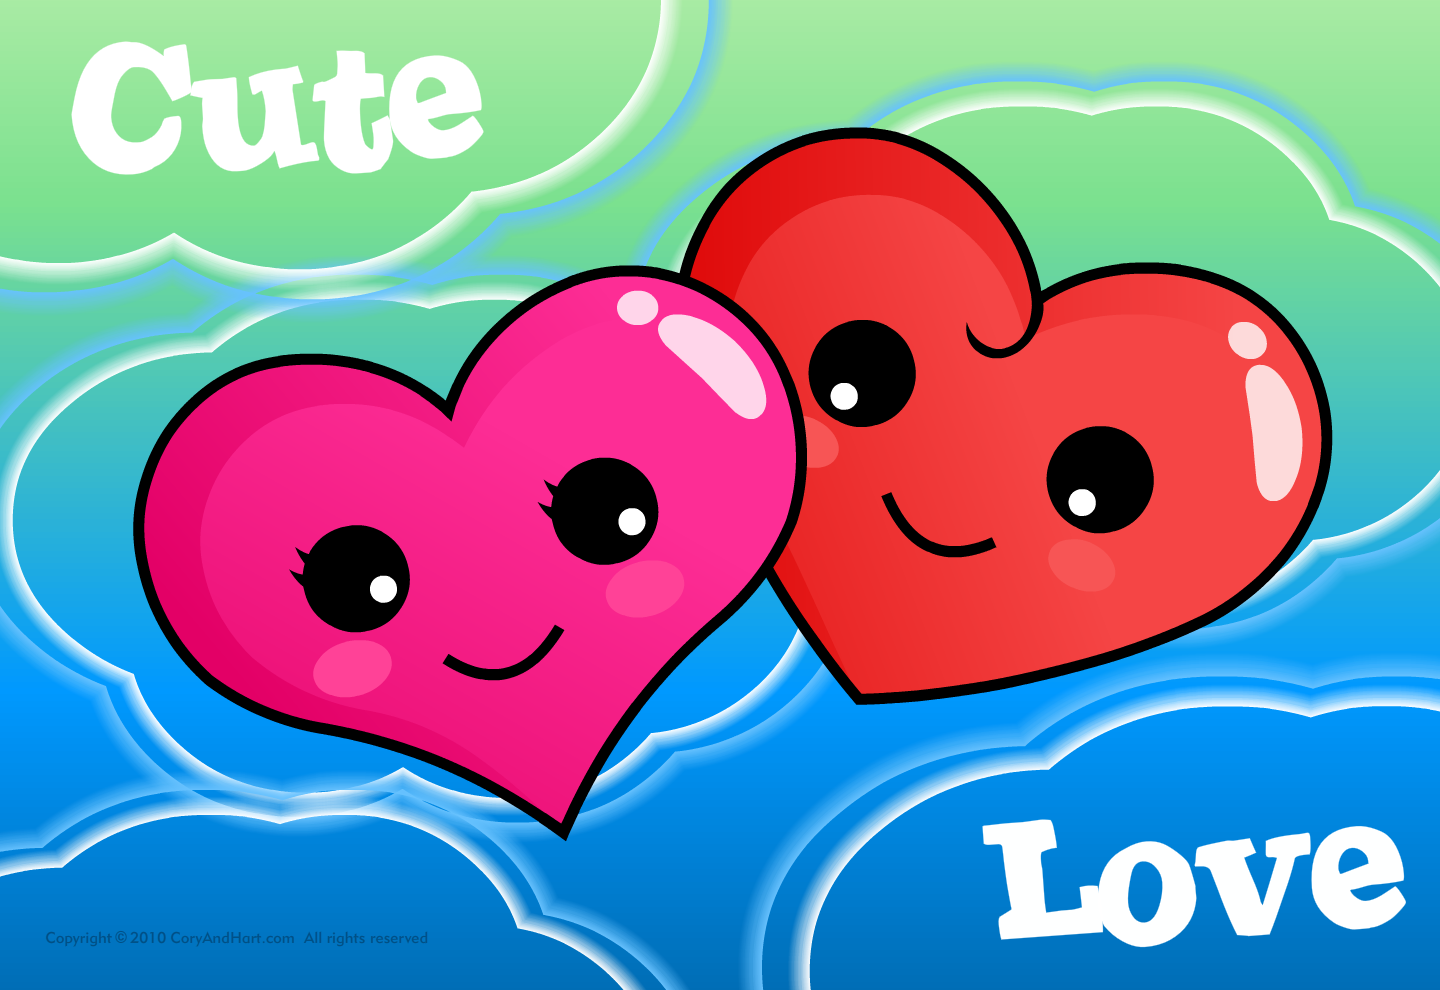 Labels cute love wallpapers 1440x990